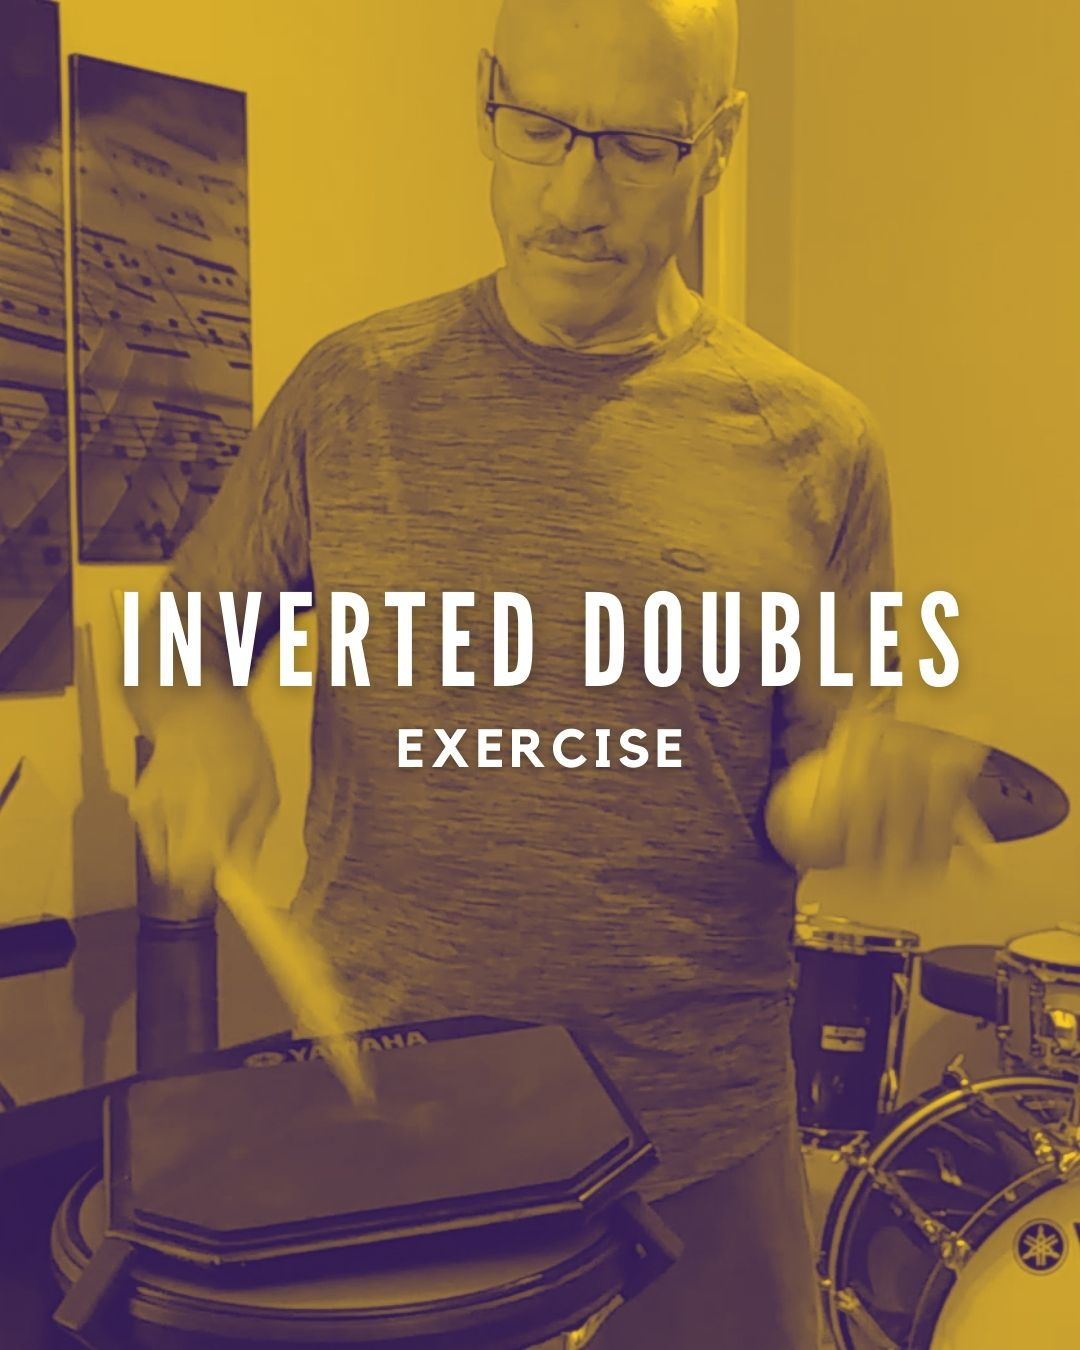 Inverted Doubles